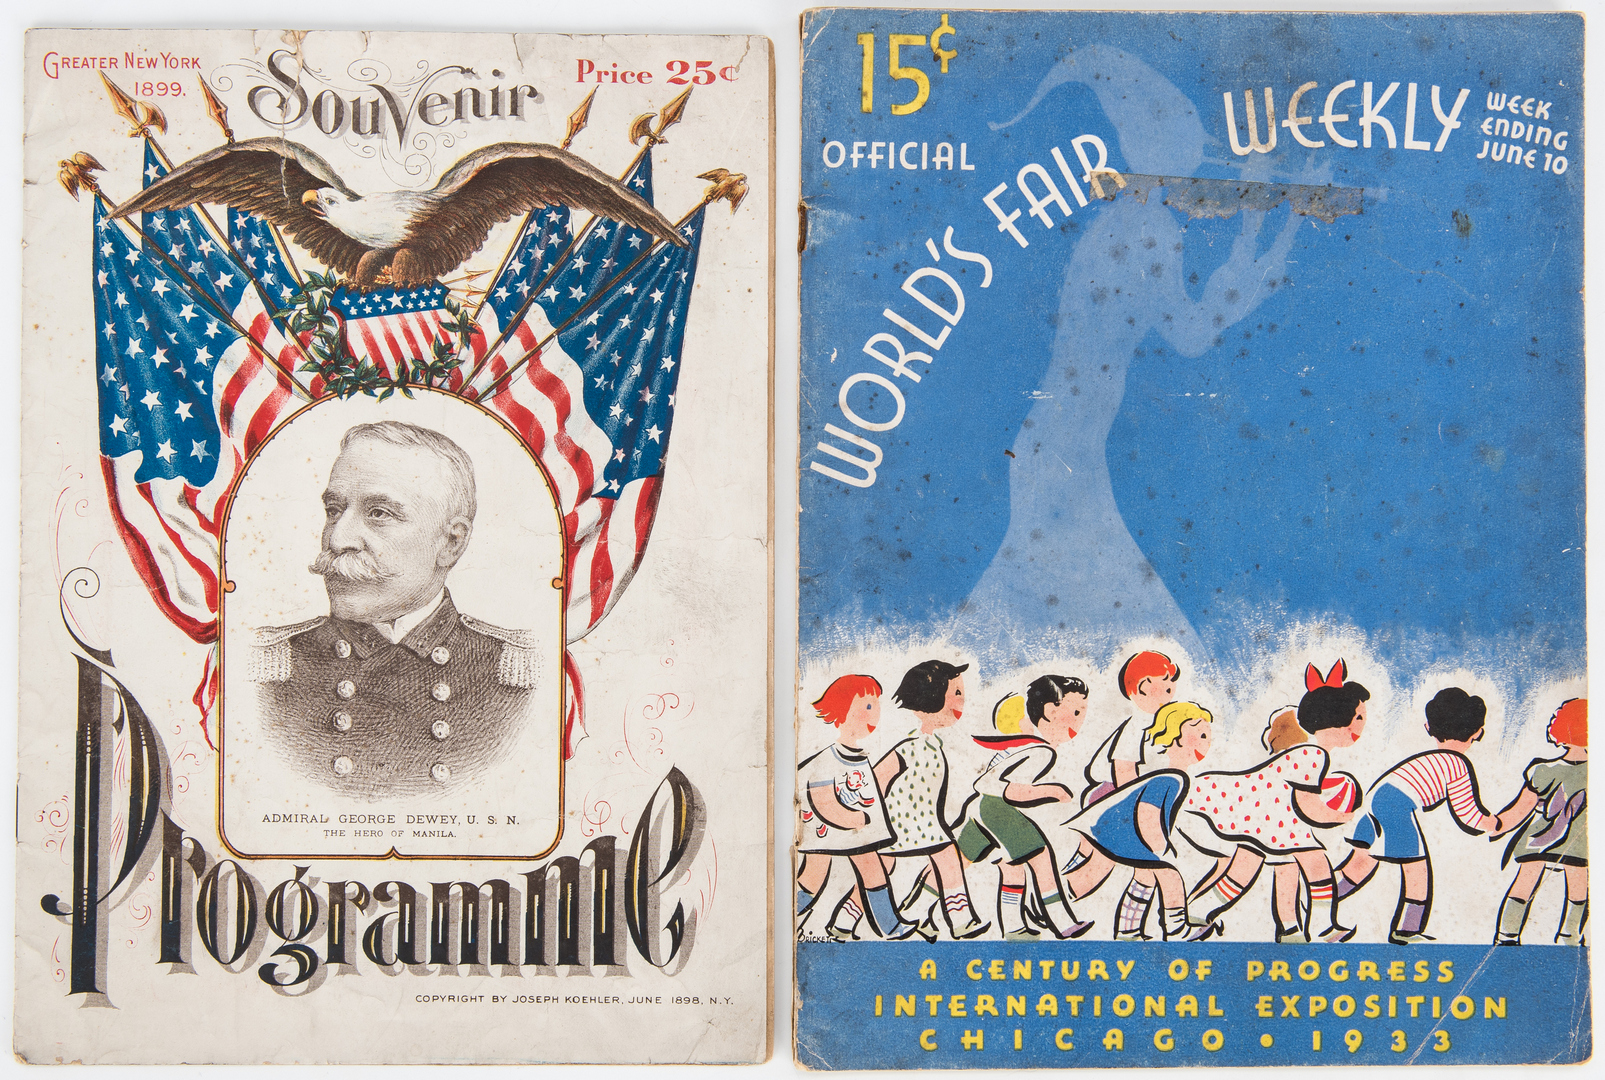 Lot 1045: World's Fair Ephemera and Textiles, 7 items